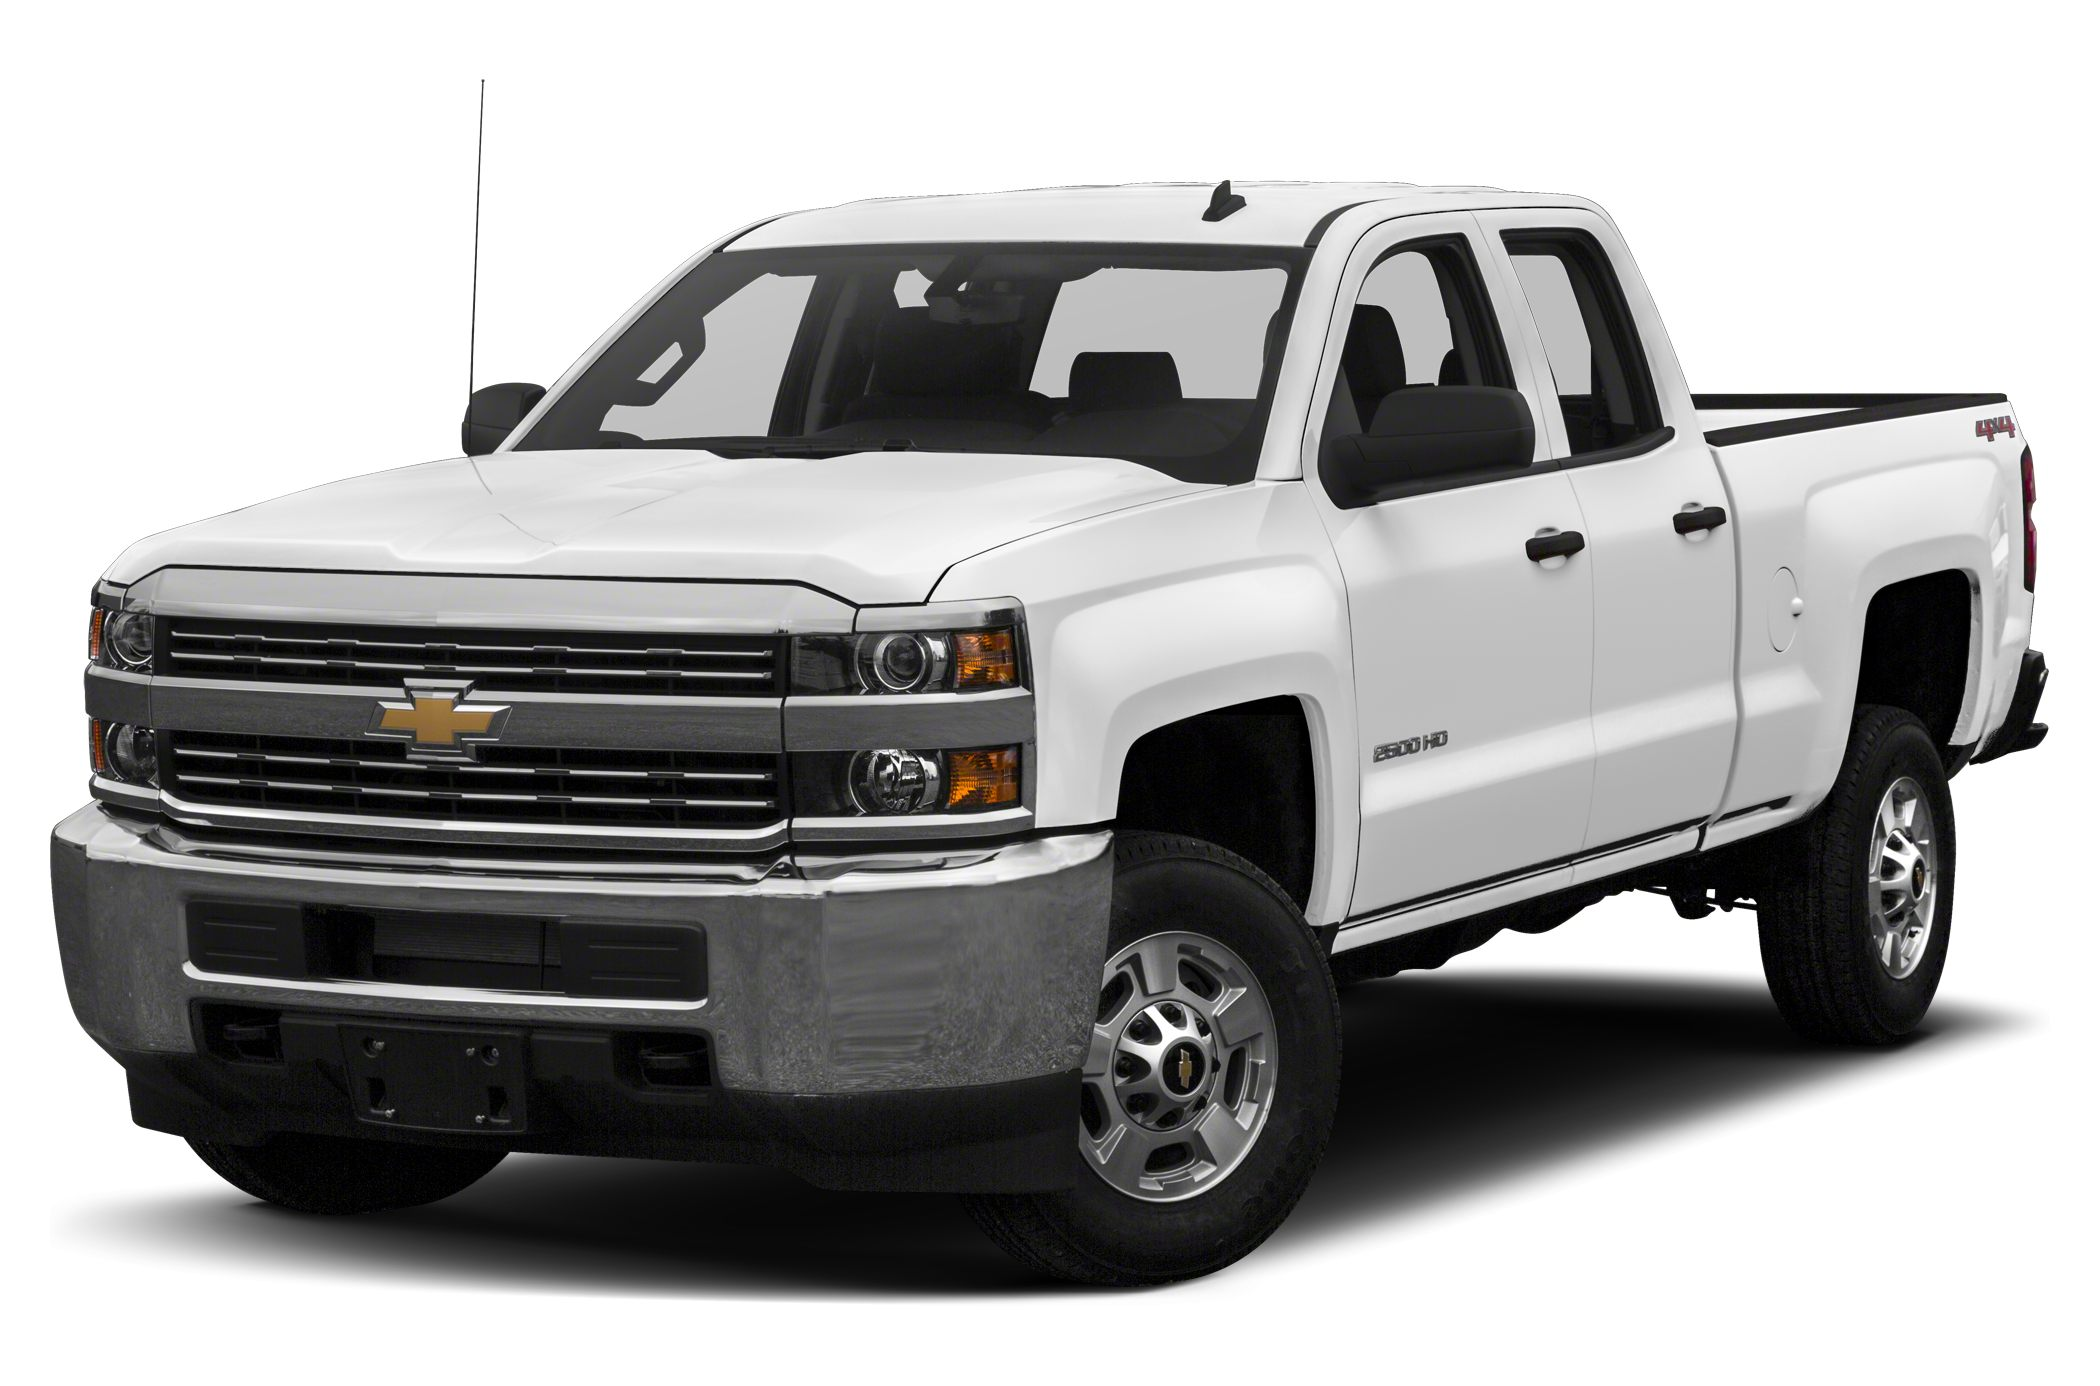 2015 Chevrolet Silverado 2500 LTZ Crew Cab Pickup for sale in Camdenton for $48,450 with 17 miles